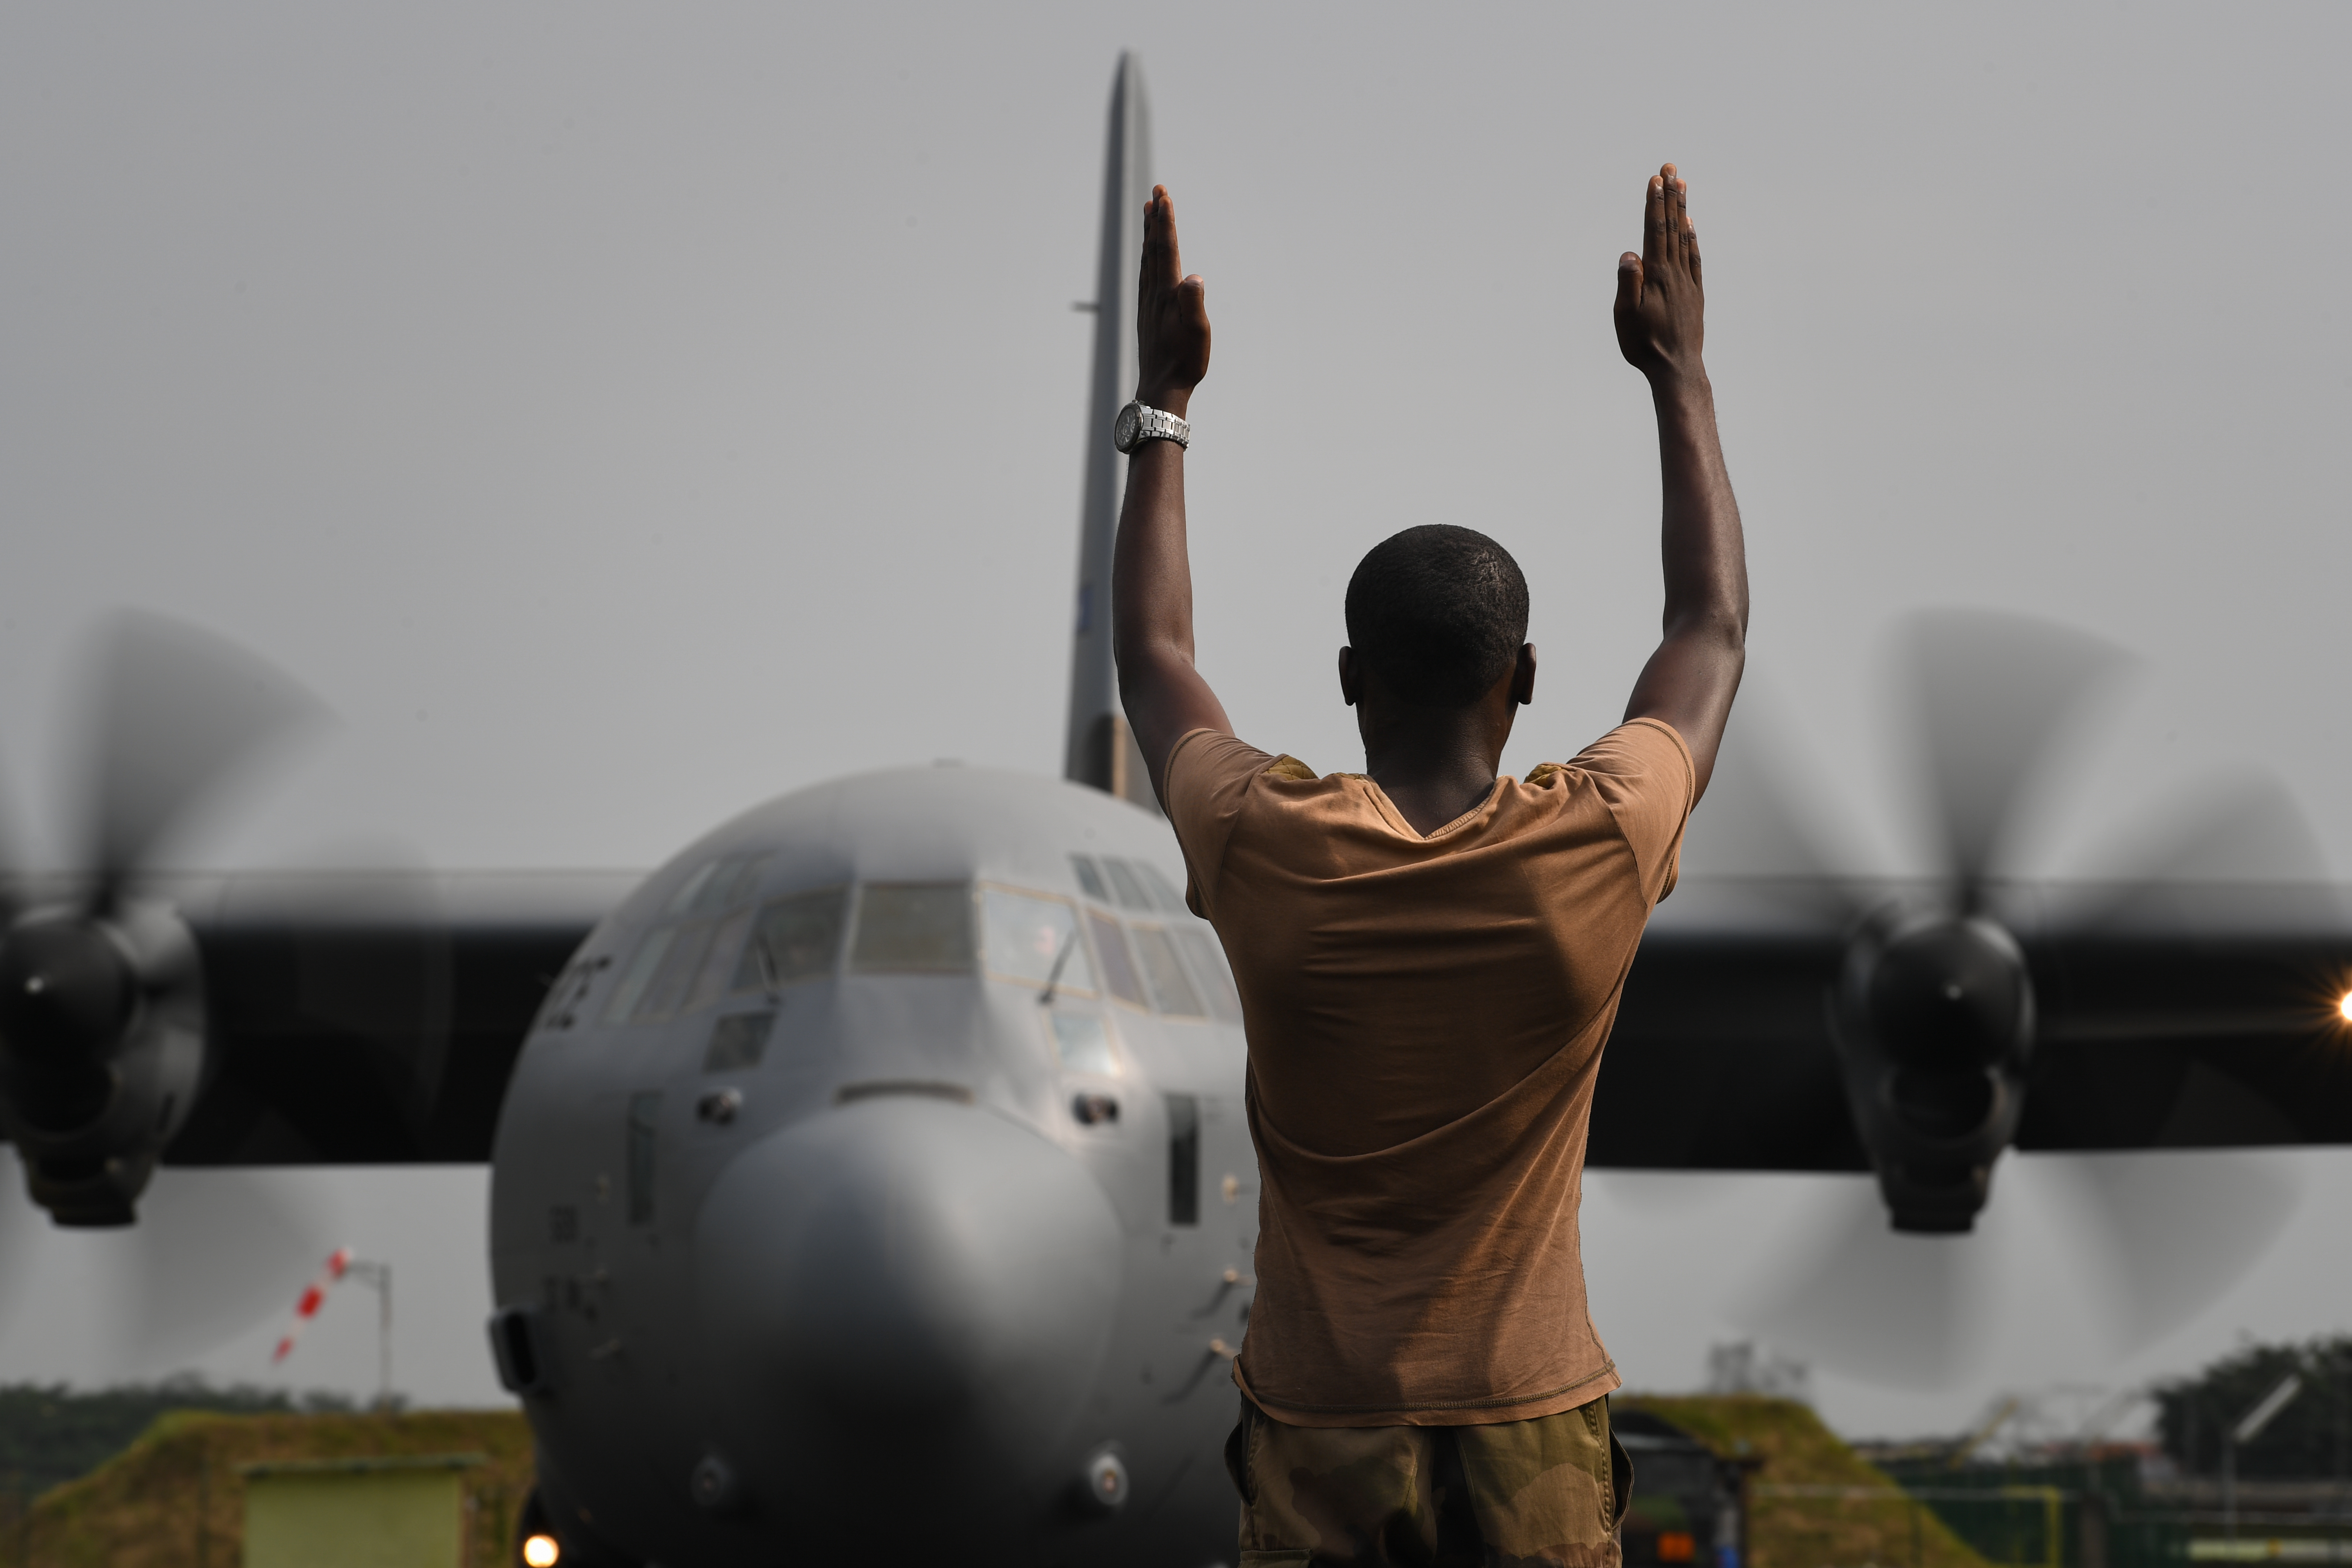 A U.S. Air Force C-130J Hercules assigned to the 75th Expeditionary Airlift Squadron, deployed in support of Combined Joint Task Force-Horn of Africa, lands in Libreville, Gabon, to resupply a cooperative security location, Jan. 22, 2019.  The 75th EAS supports Combined Joint Task Force - Horn of Africa (CJTF-HOA) with medical evacuations, disaster relief, humanitarian and airdrop operations. (U.S. Air Force photo by Staff Sgt. Corban Lundborg)